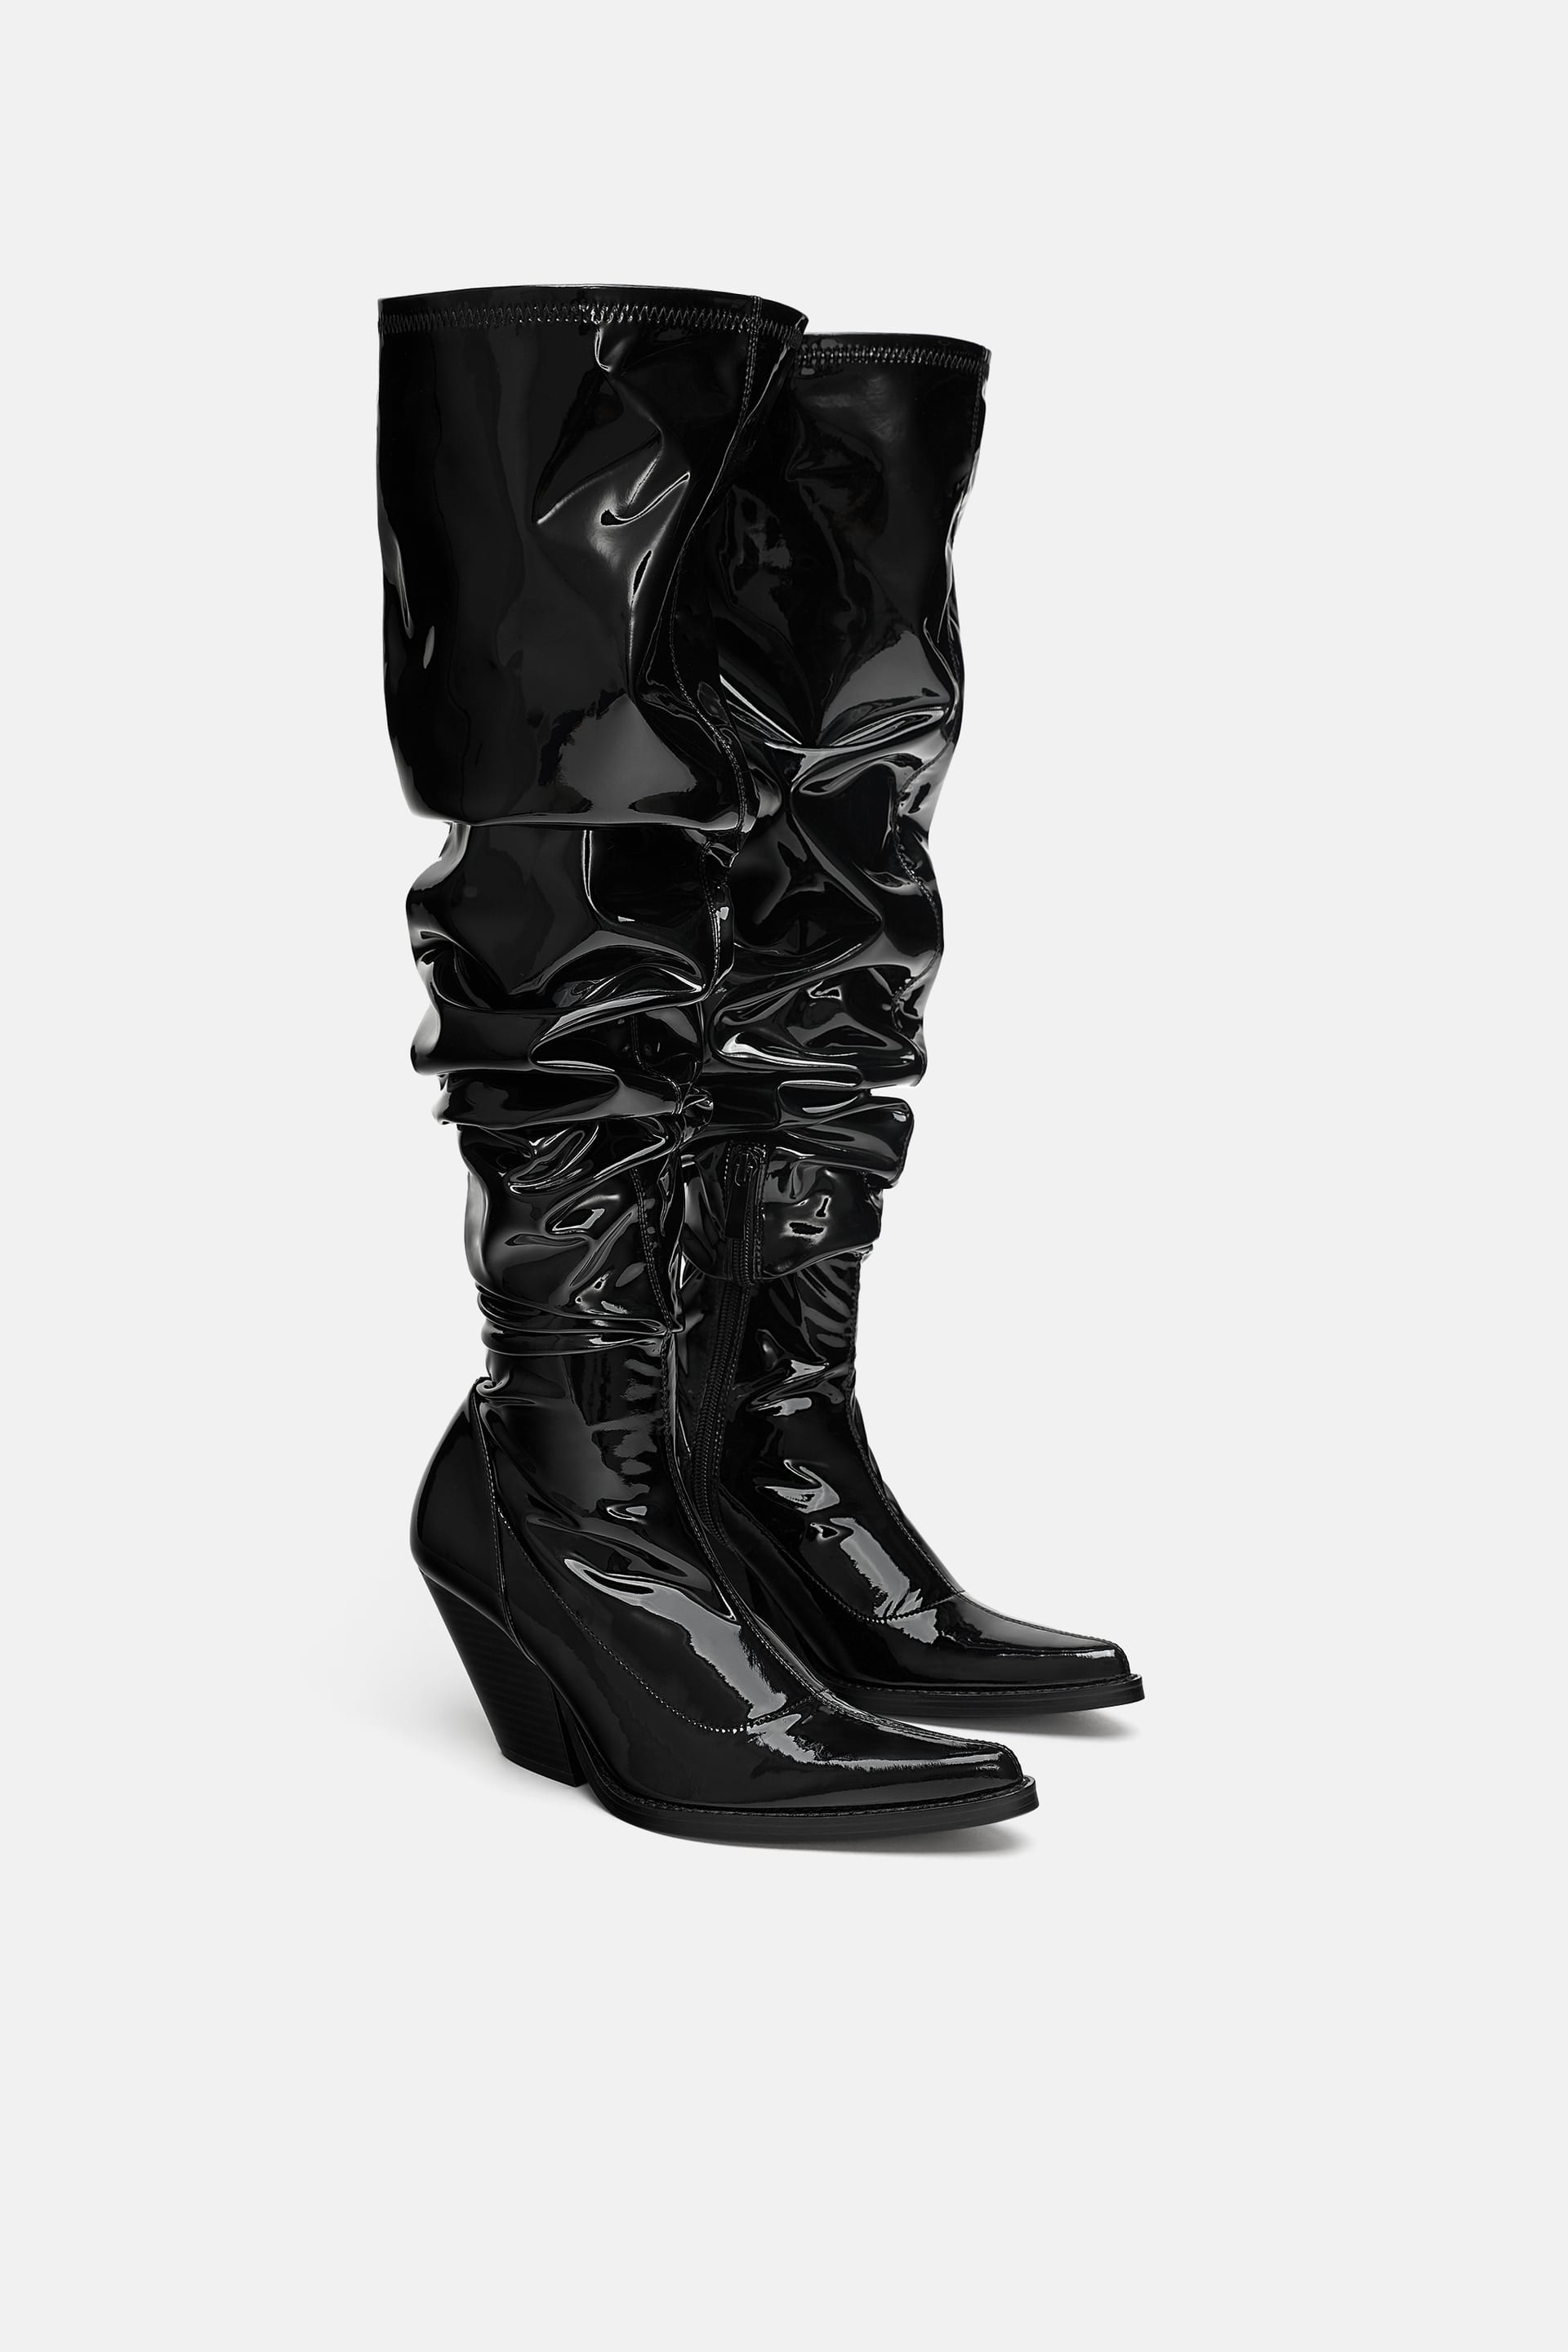 85c399ff1d8 Black Over-The-Knee Boots To Pair With Literally Everything In Your Fall  Wardrobe